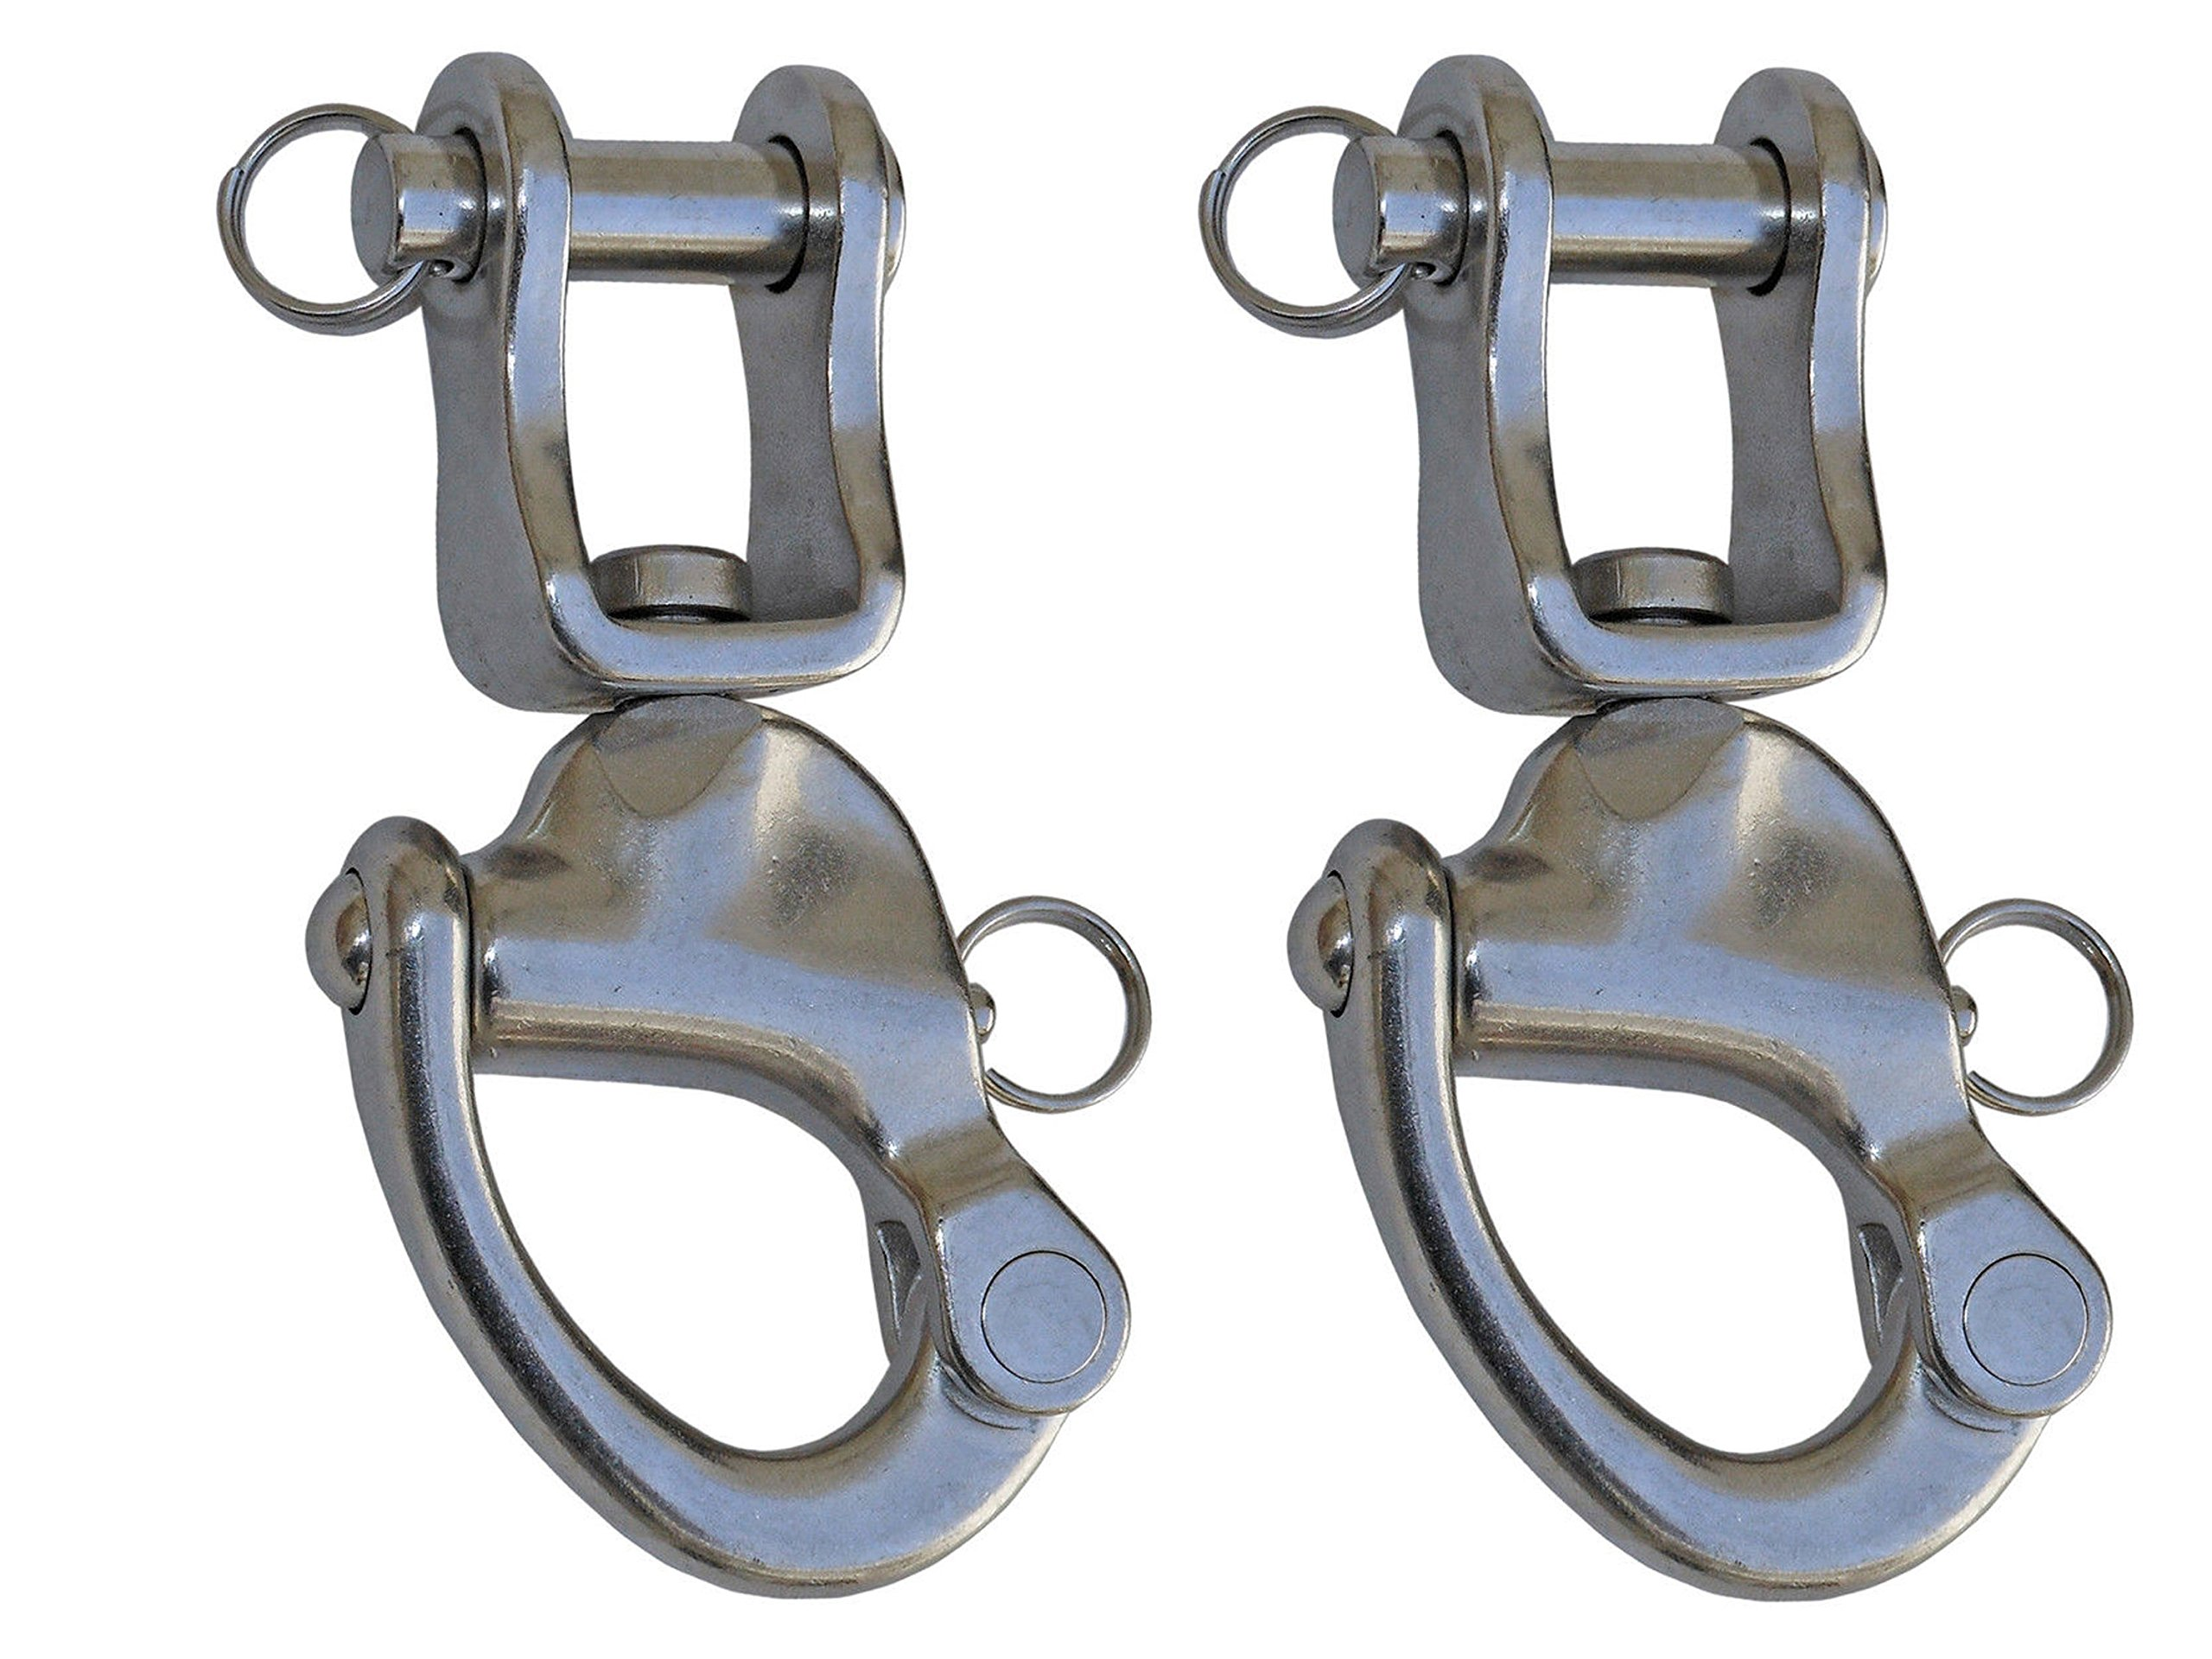 Five Oceans Tack Swivel Snap Shackle, 5'' (Pairs) FO-448-M2